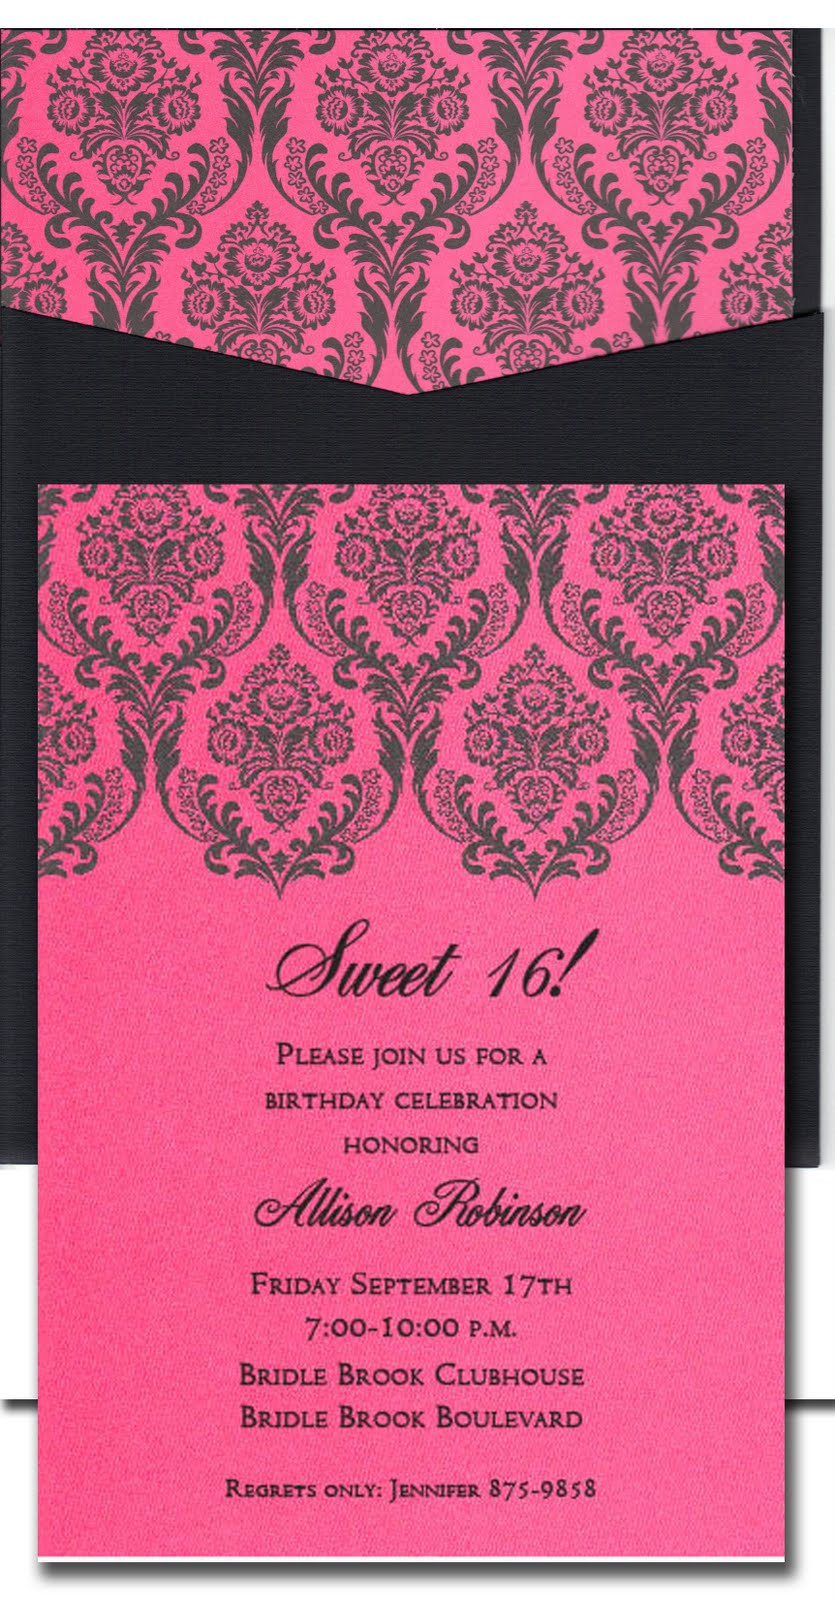 Paper celebration sweet 16 party invitations sweet 16 party invitations monicamarmolfo Image collections